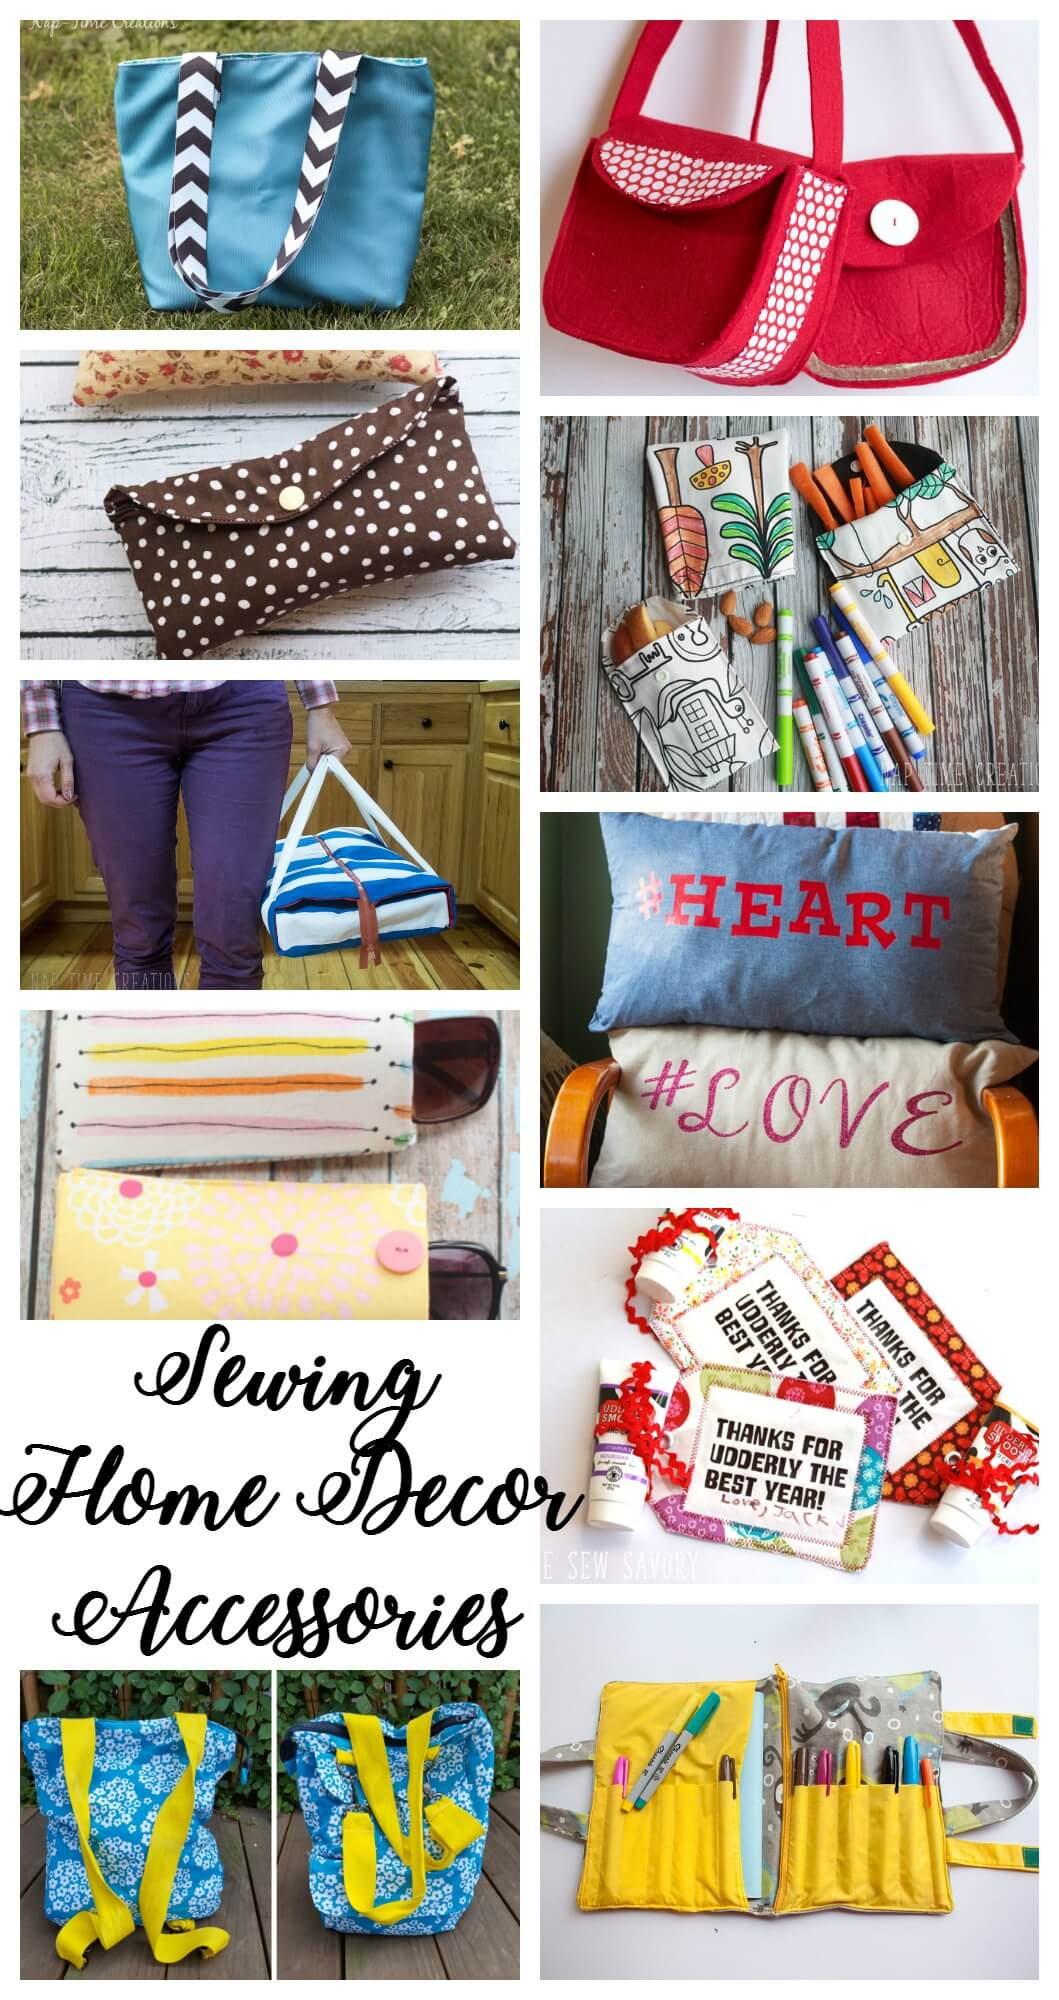 sewing home decor & accessories